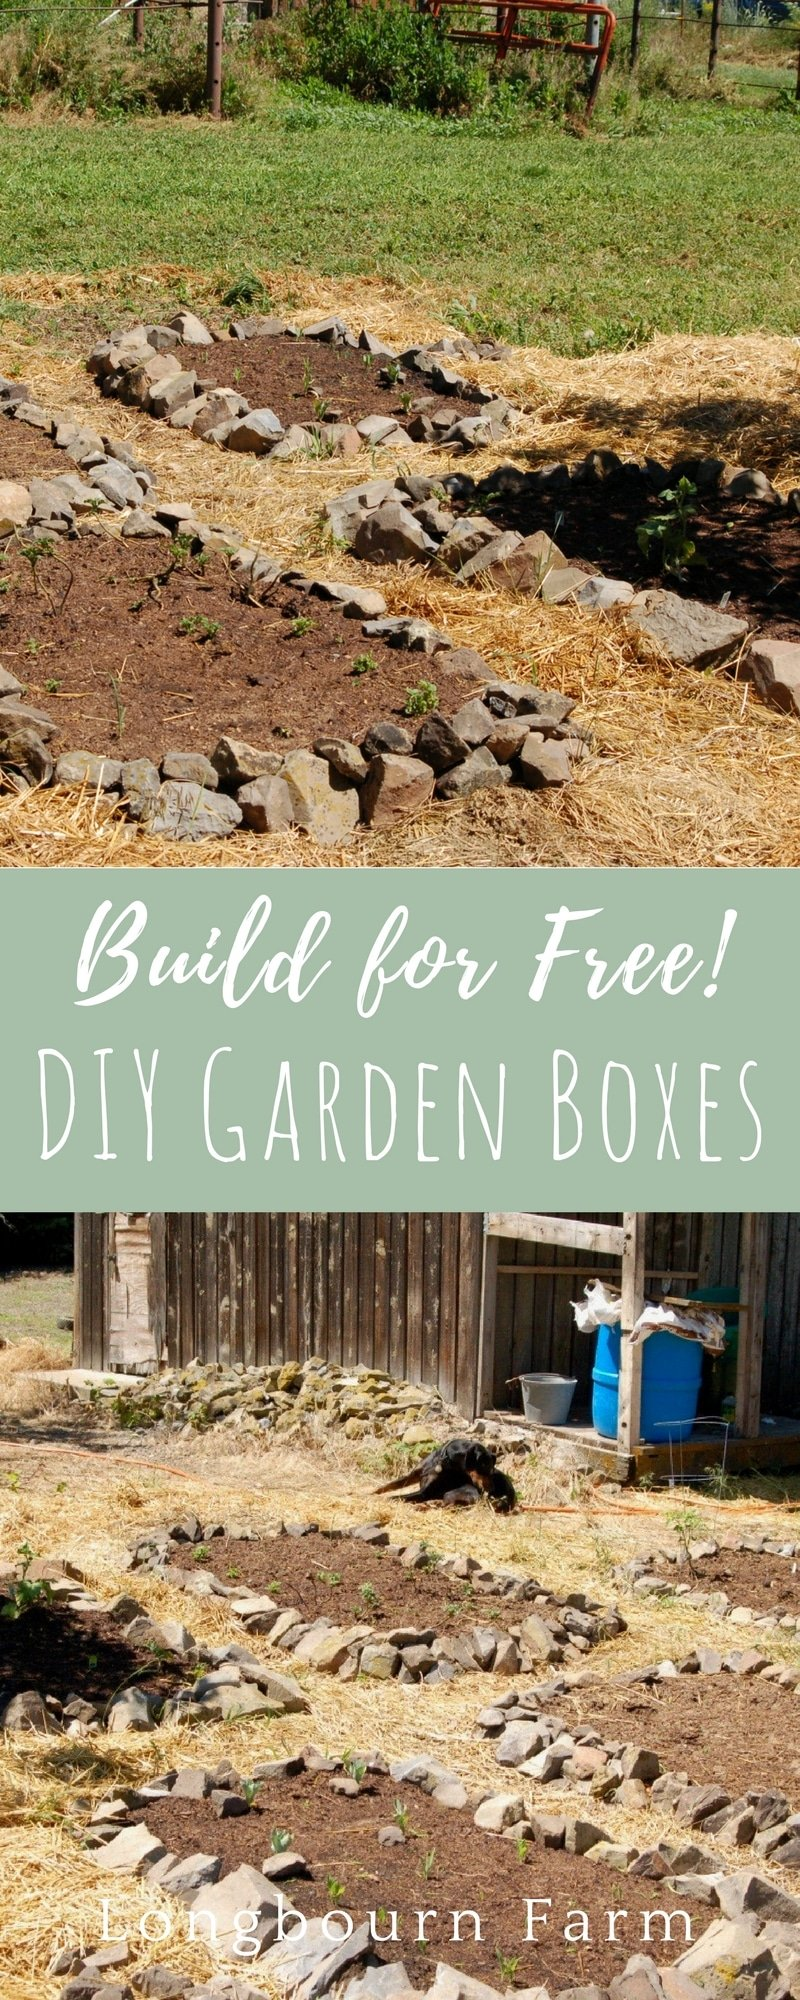 Check out how I made DIY garden boxes for free and didn't have to build a thing. I used the most plentiful material on my property: Rocks!